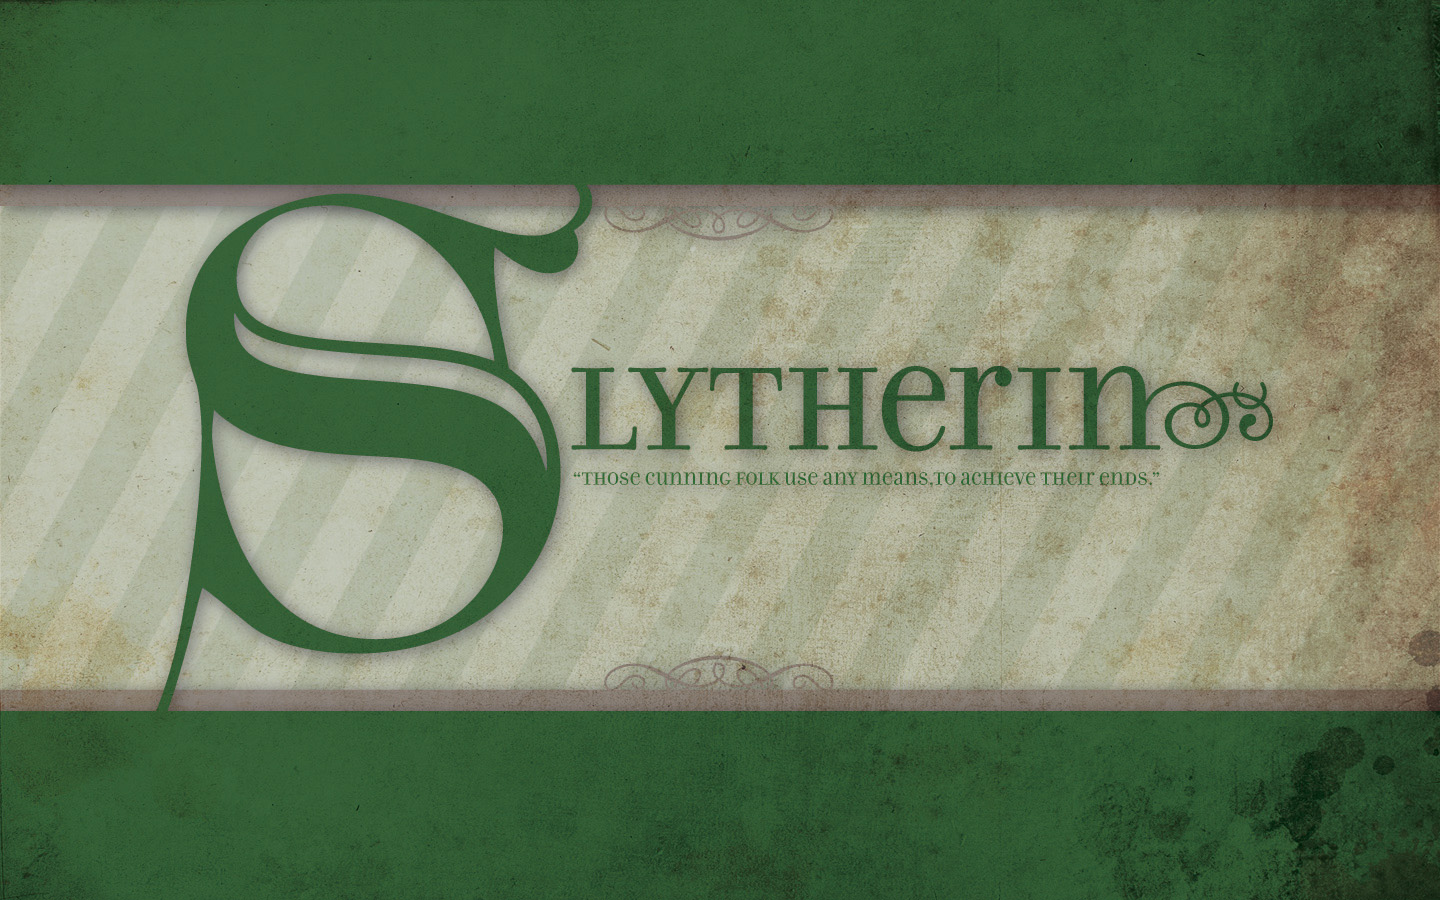 Hd Slytherin Wallpaper Wallpapersafari